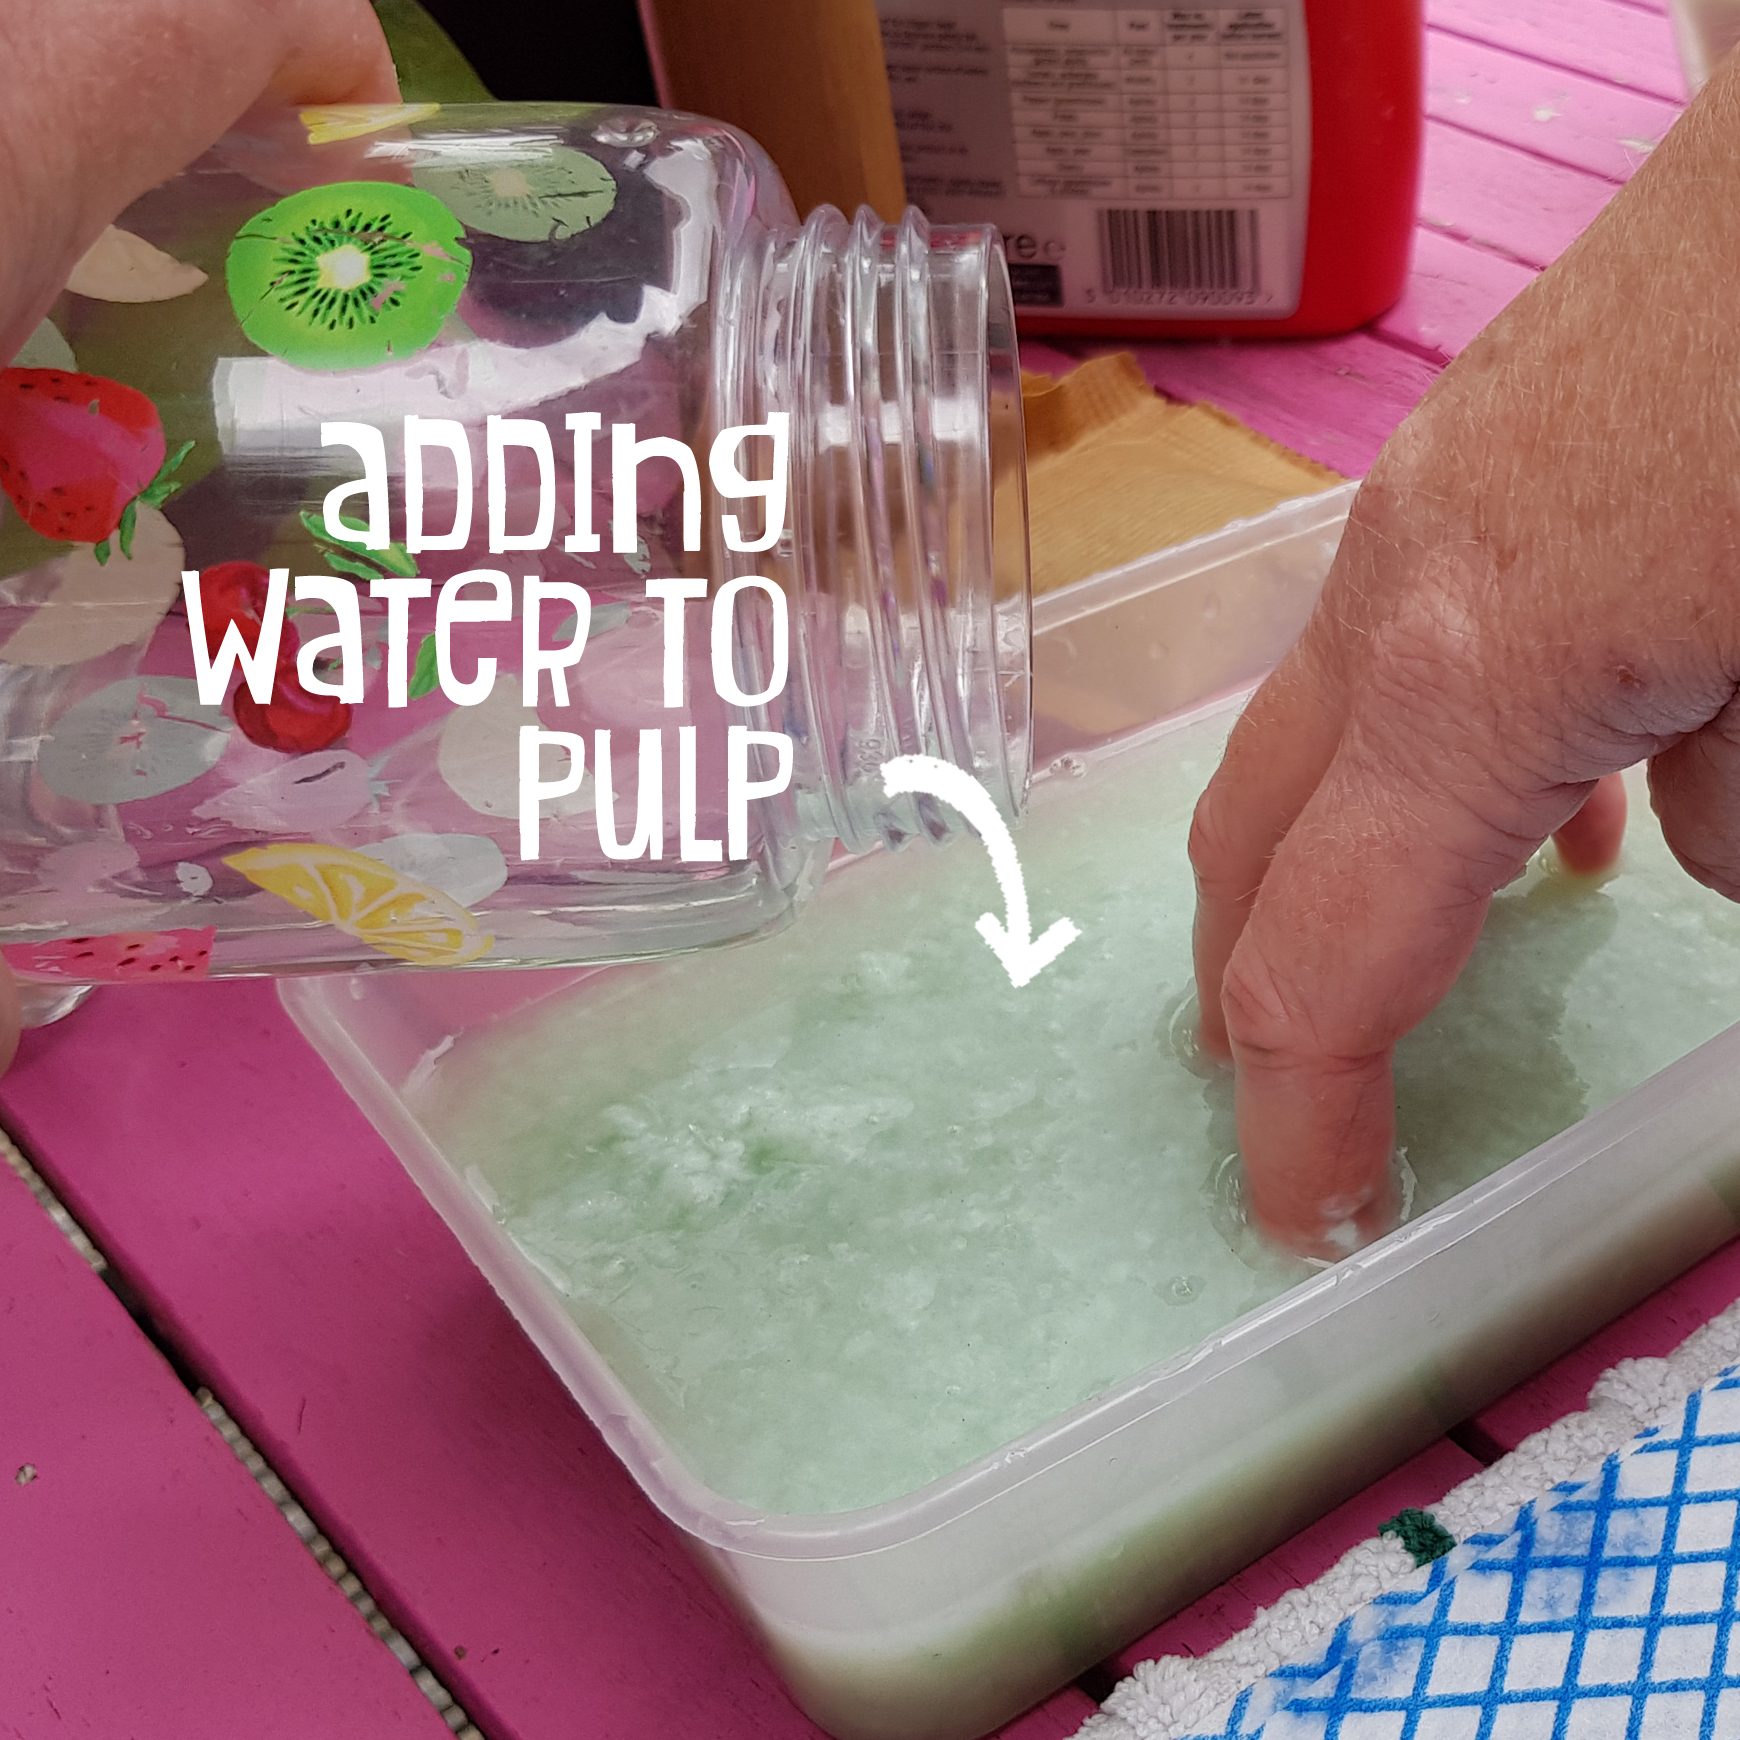 Adding water to pulp